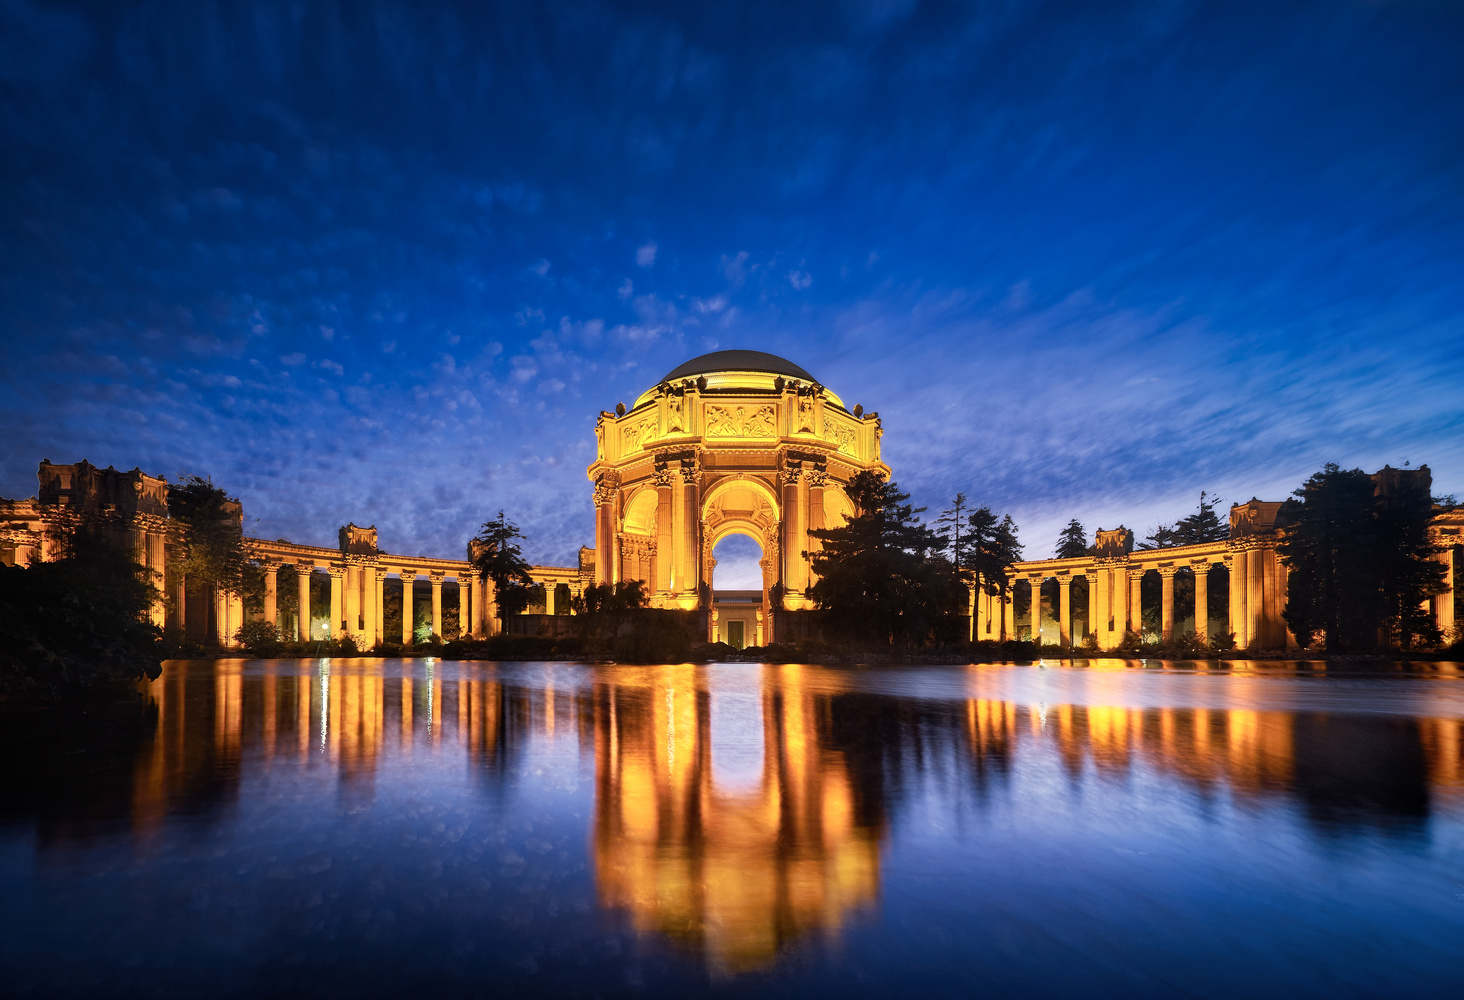 The Palace of Fine Arts by kevin nisperos